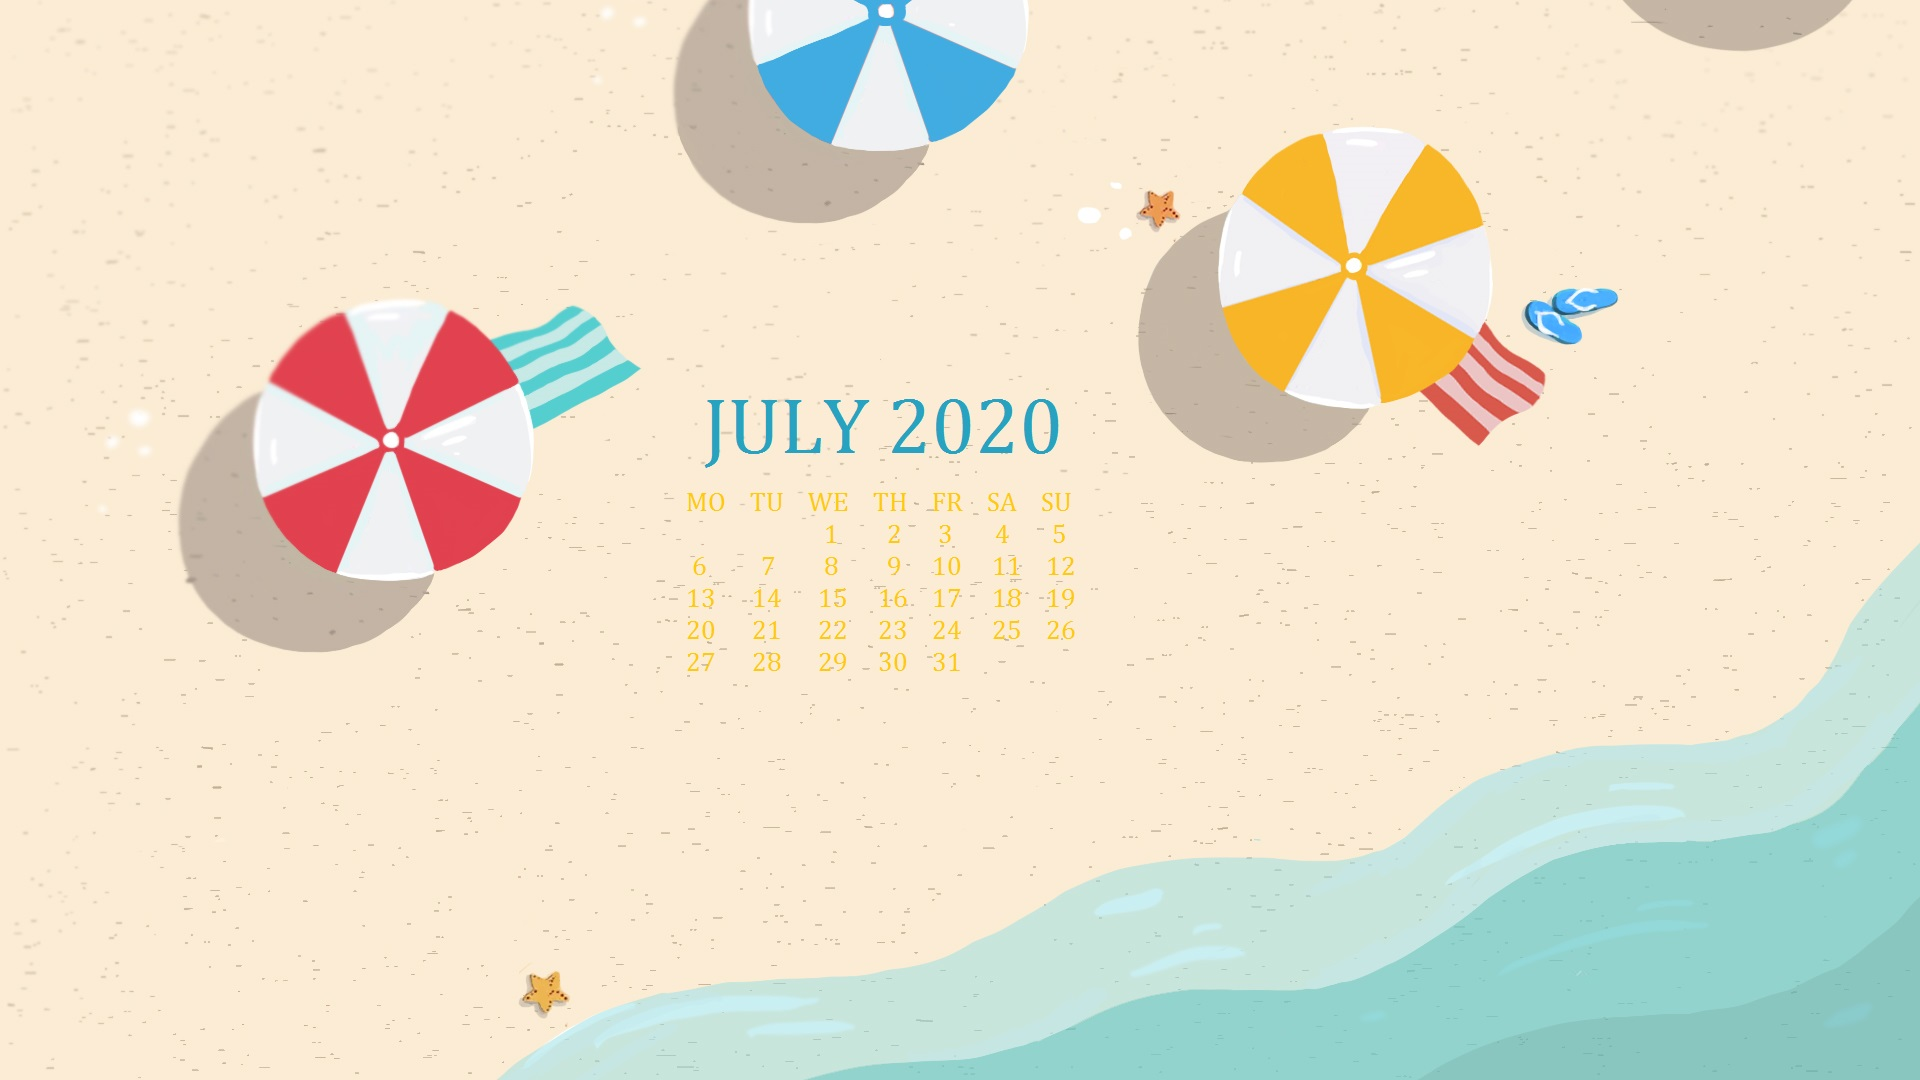 July 2020 Desktop Background Calendar